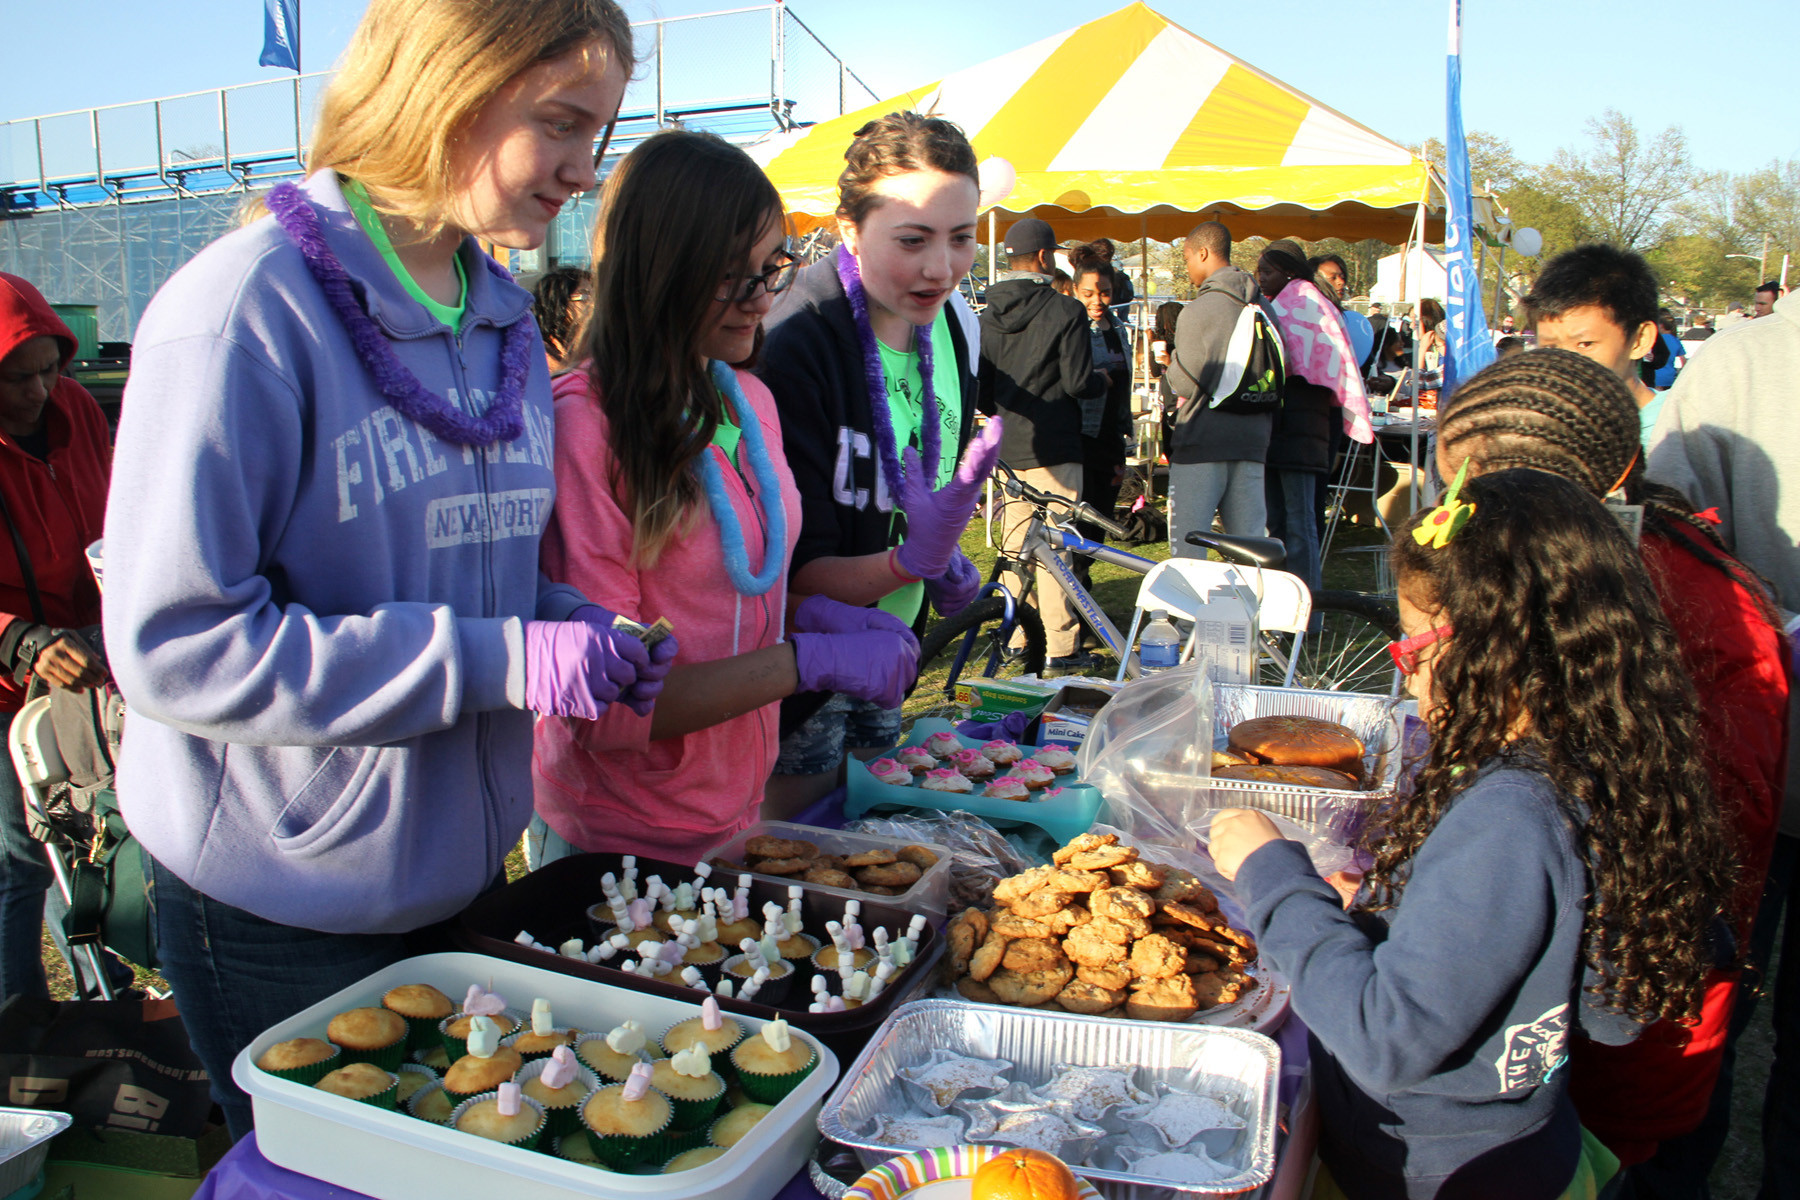 Students from Herber middle schoool's national honor society help raise money by selling goodies.  From left, they are Catherine Walsh, Magda Kubik and Rosa Romano.